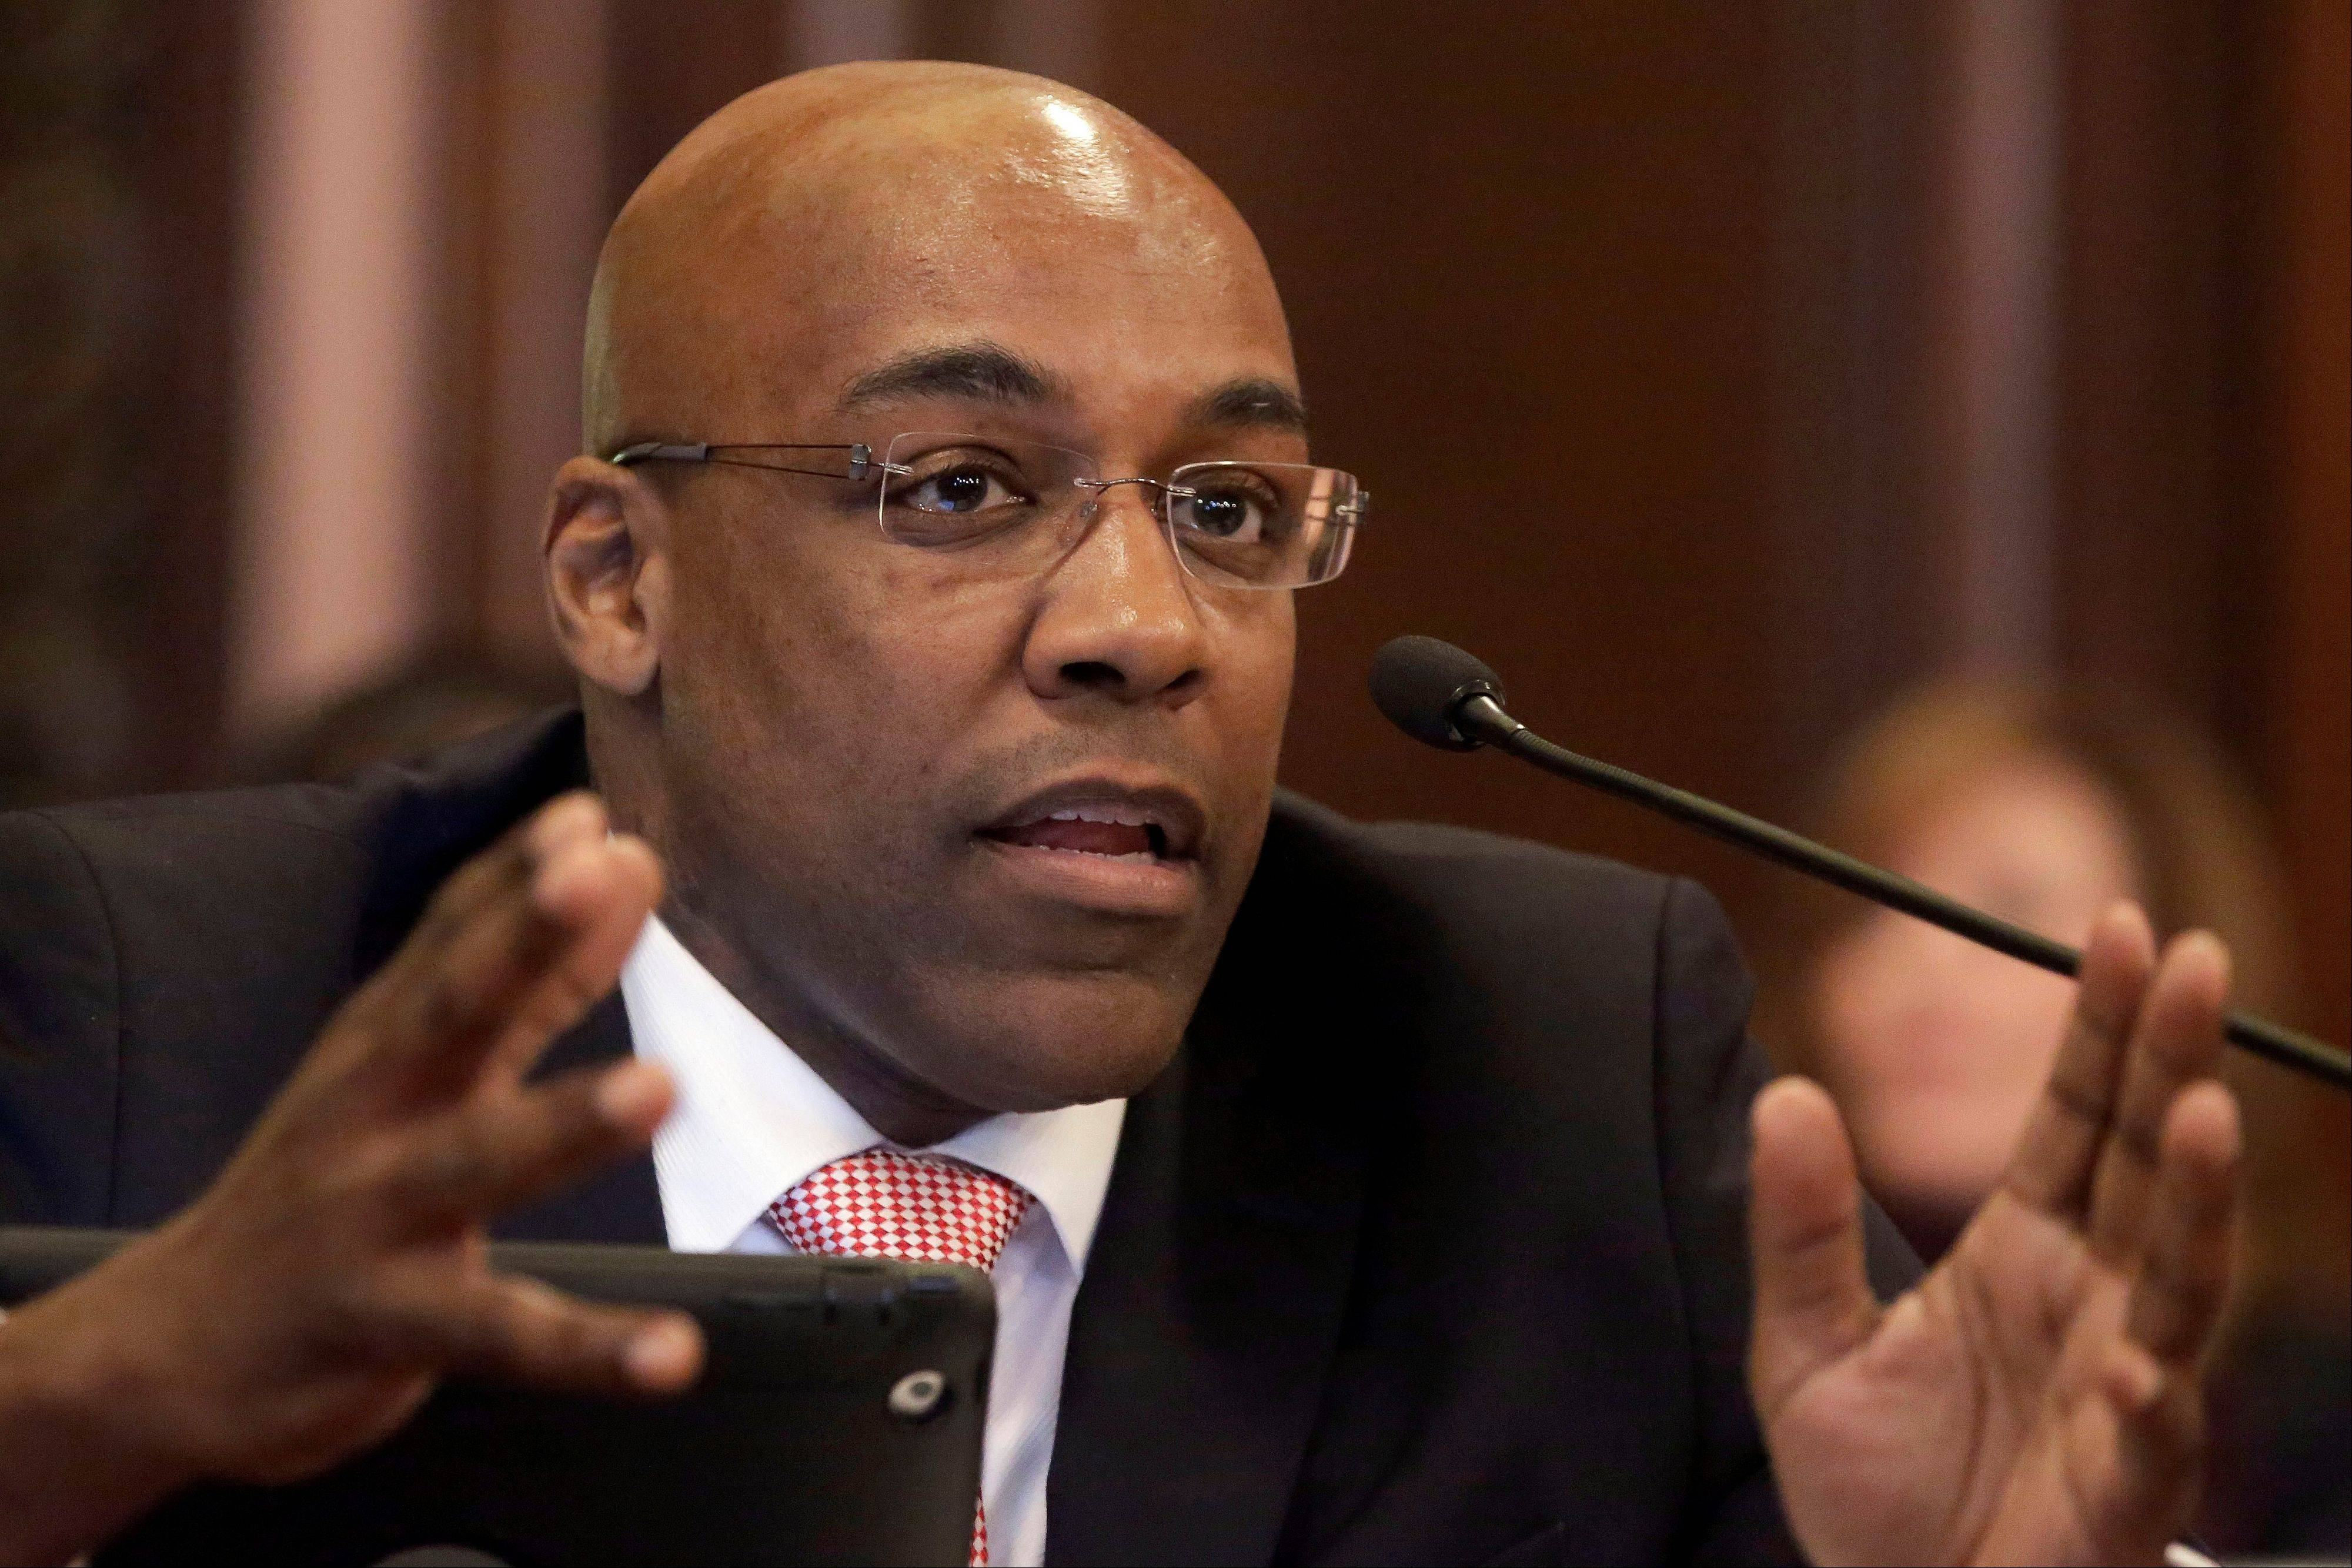 State Sen. Kwame Raoul, a Chicago Democrat, ask questions during a Senate Executive Committee hearing at the Capitol in Springfield. There are fewer than 30 days to go before a judicial deadline for developing a framework allowing public weapons possession in Illinois. A December federal court order calling the ban unconstitutional set a June 9 deadline for rectifying the problem. Raoul is refining an earlier concealed-carry proposal, which drew gun-owners' derision last month, and discussions with Senate Democrats could yield consensus ready for a vote in the next few days, a spokeswoman said.